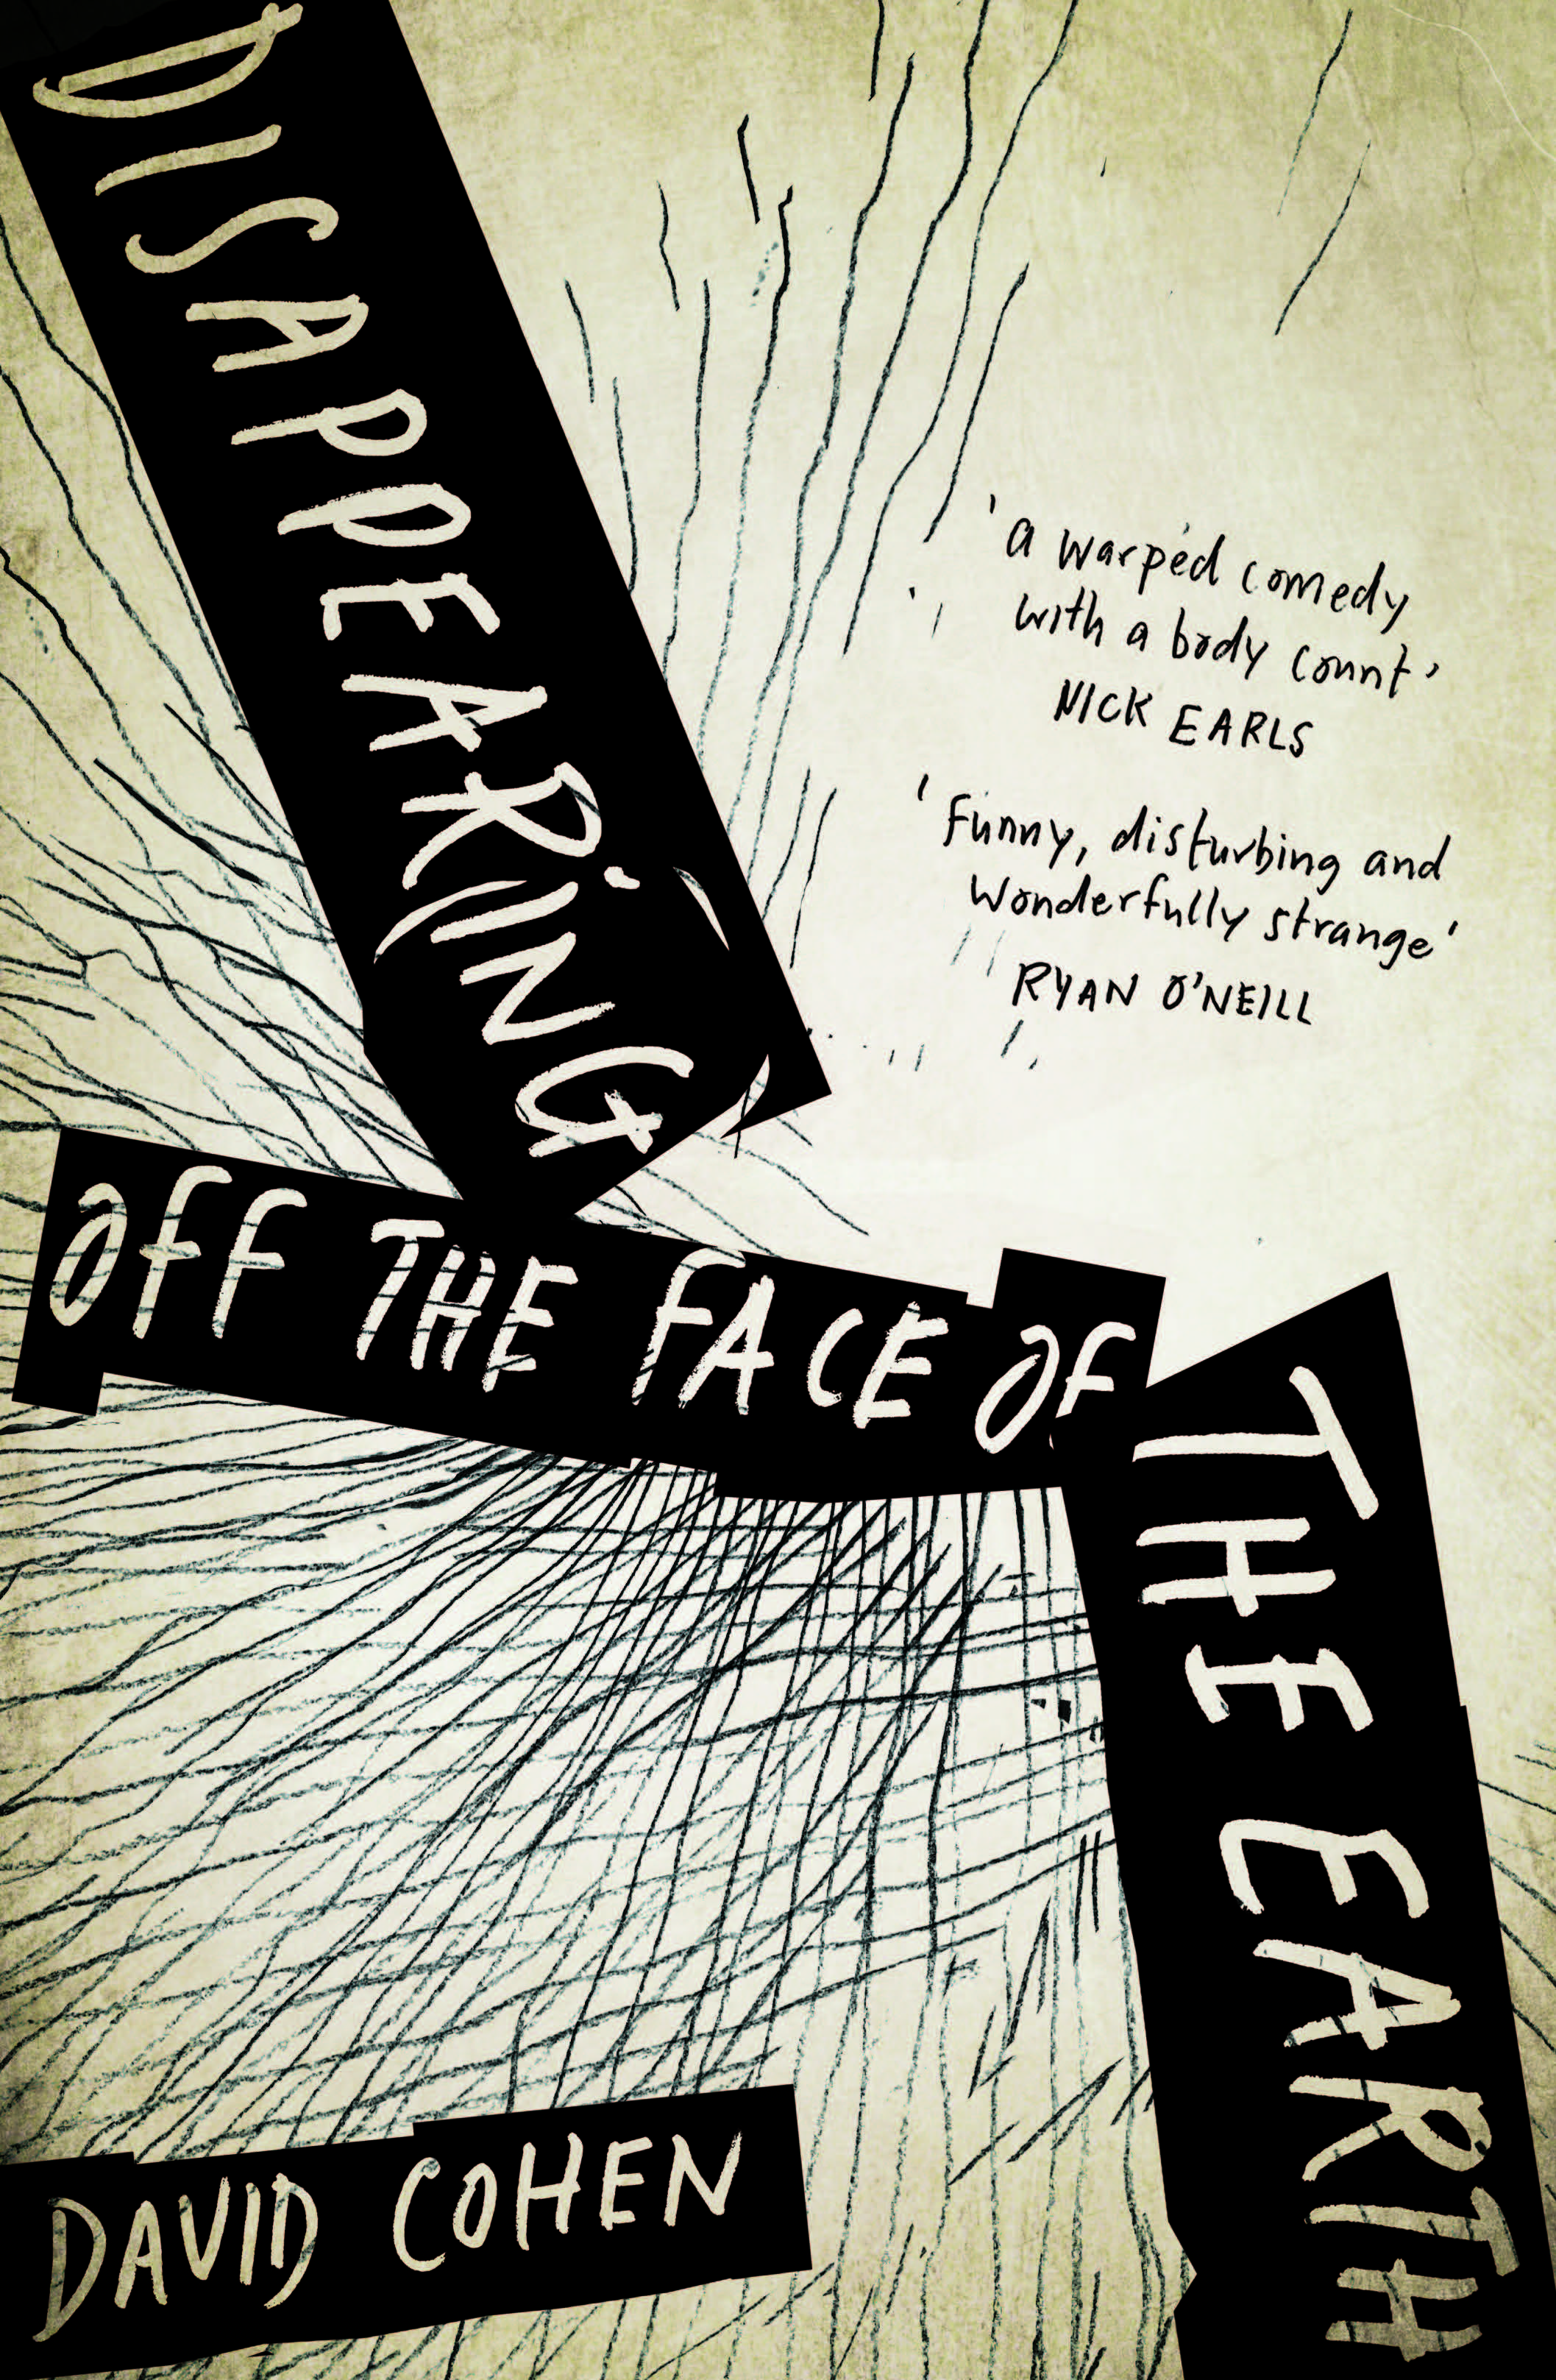 Launch of Disappearing off the Face of the Earth